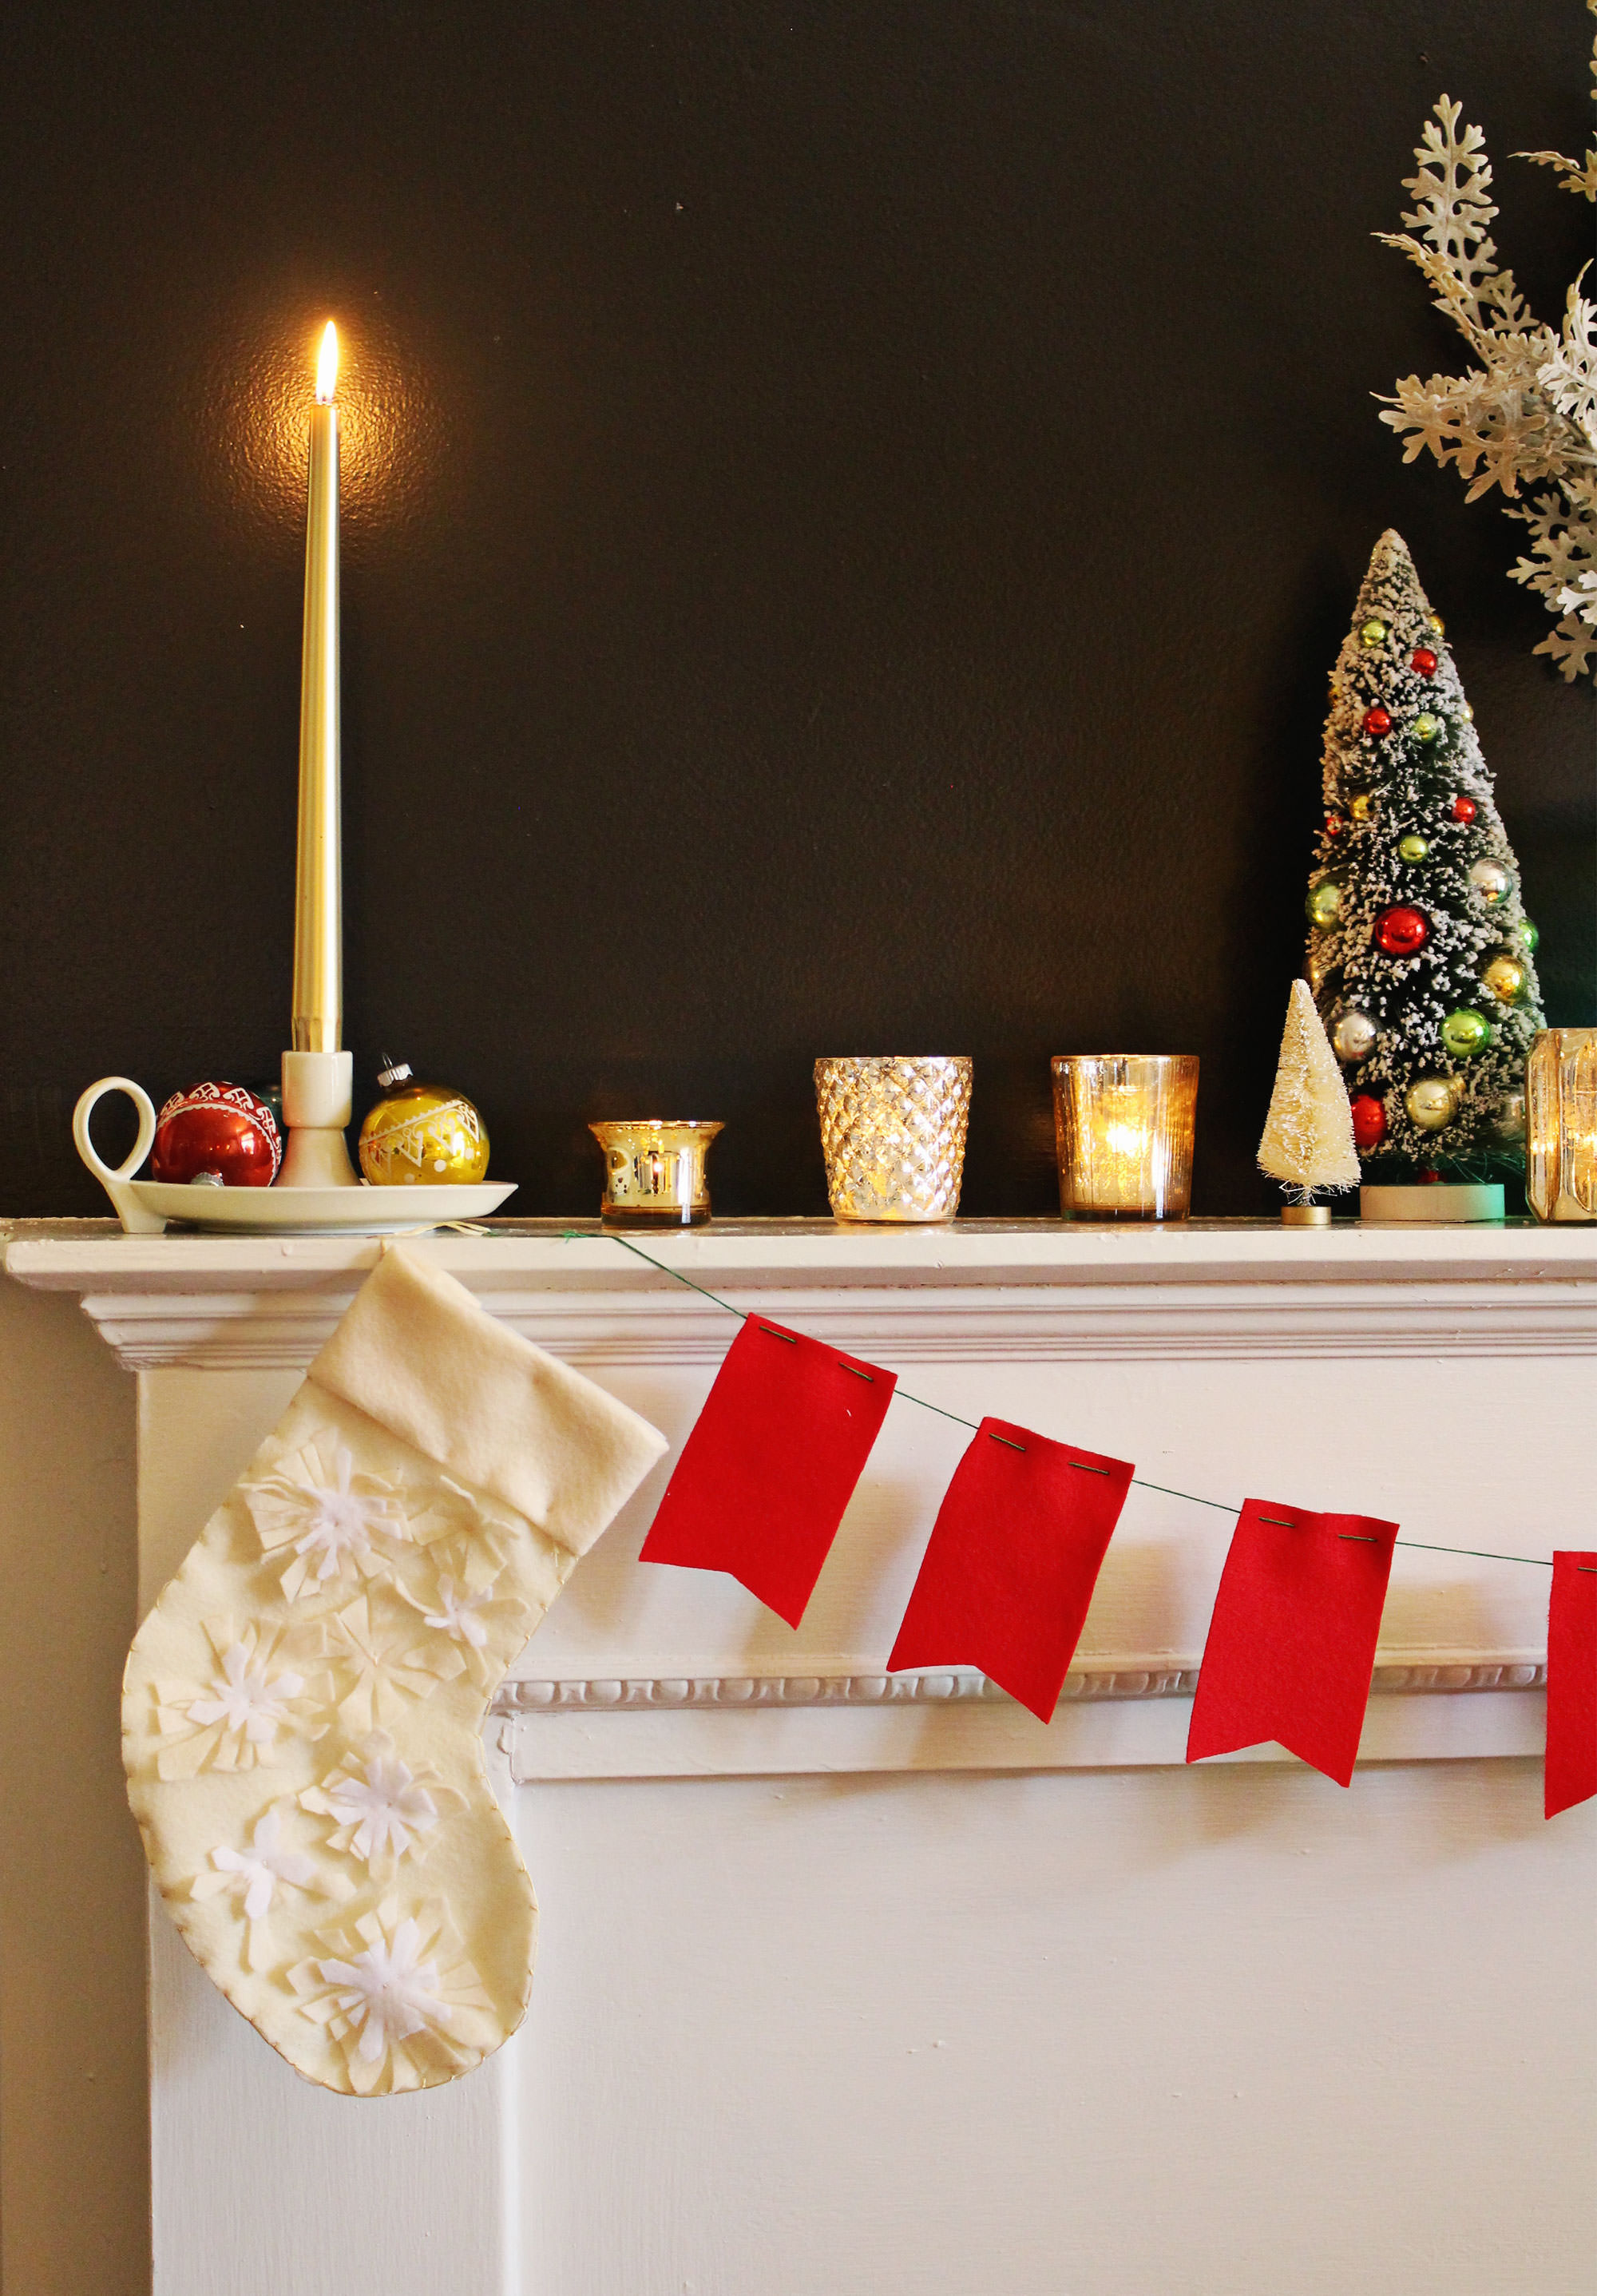 Holiday Mantel Decorating Ideas on Lily & Val Living